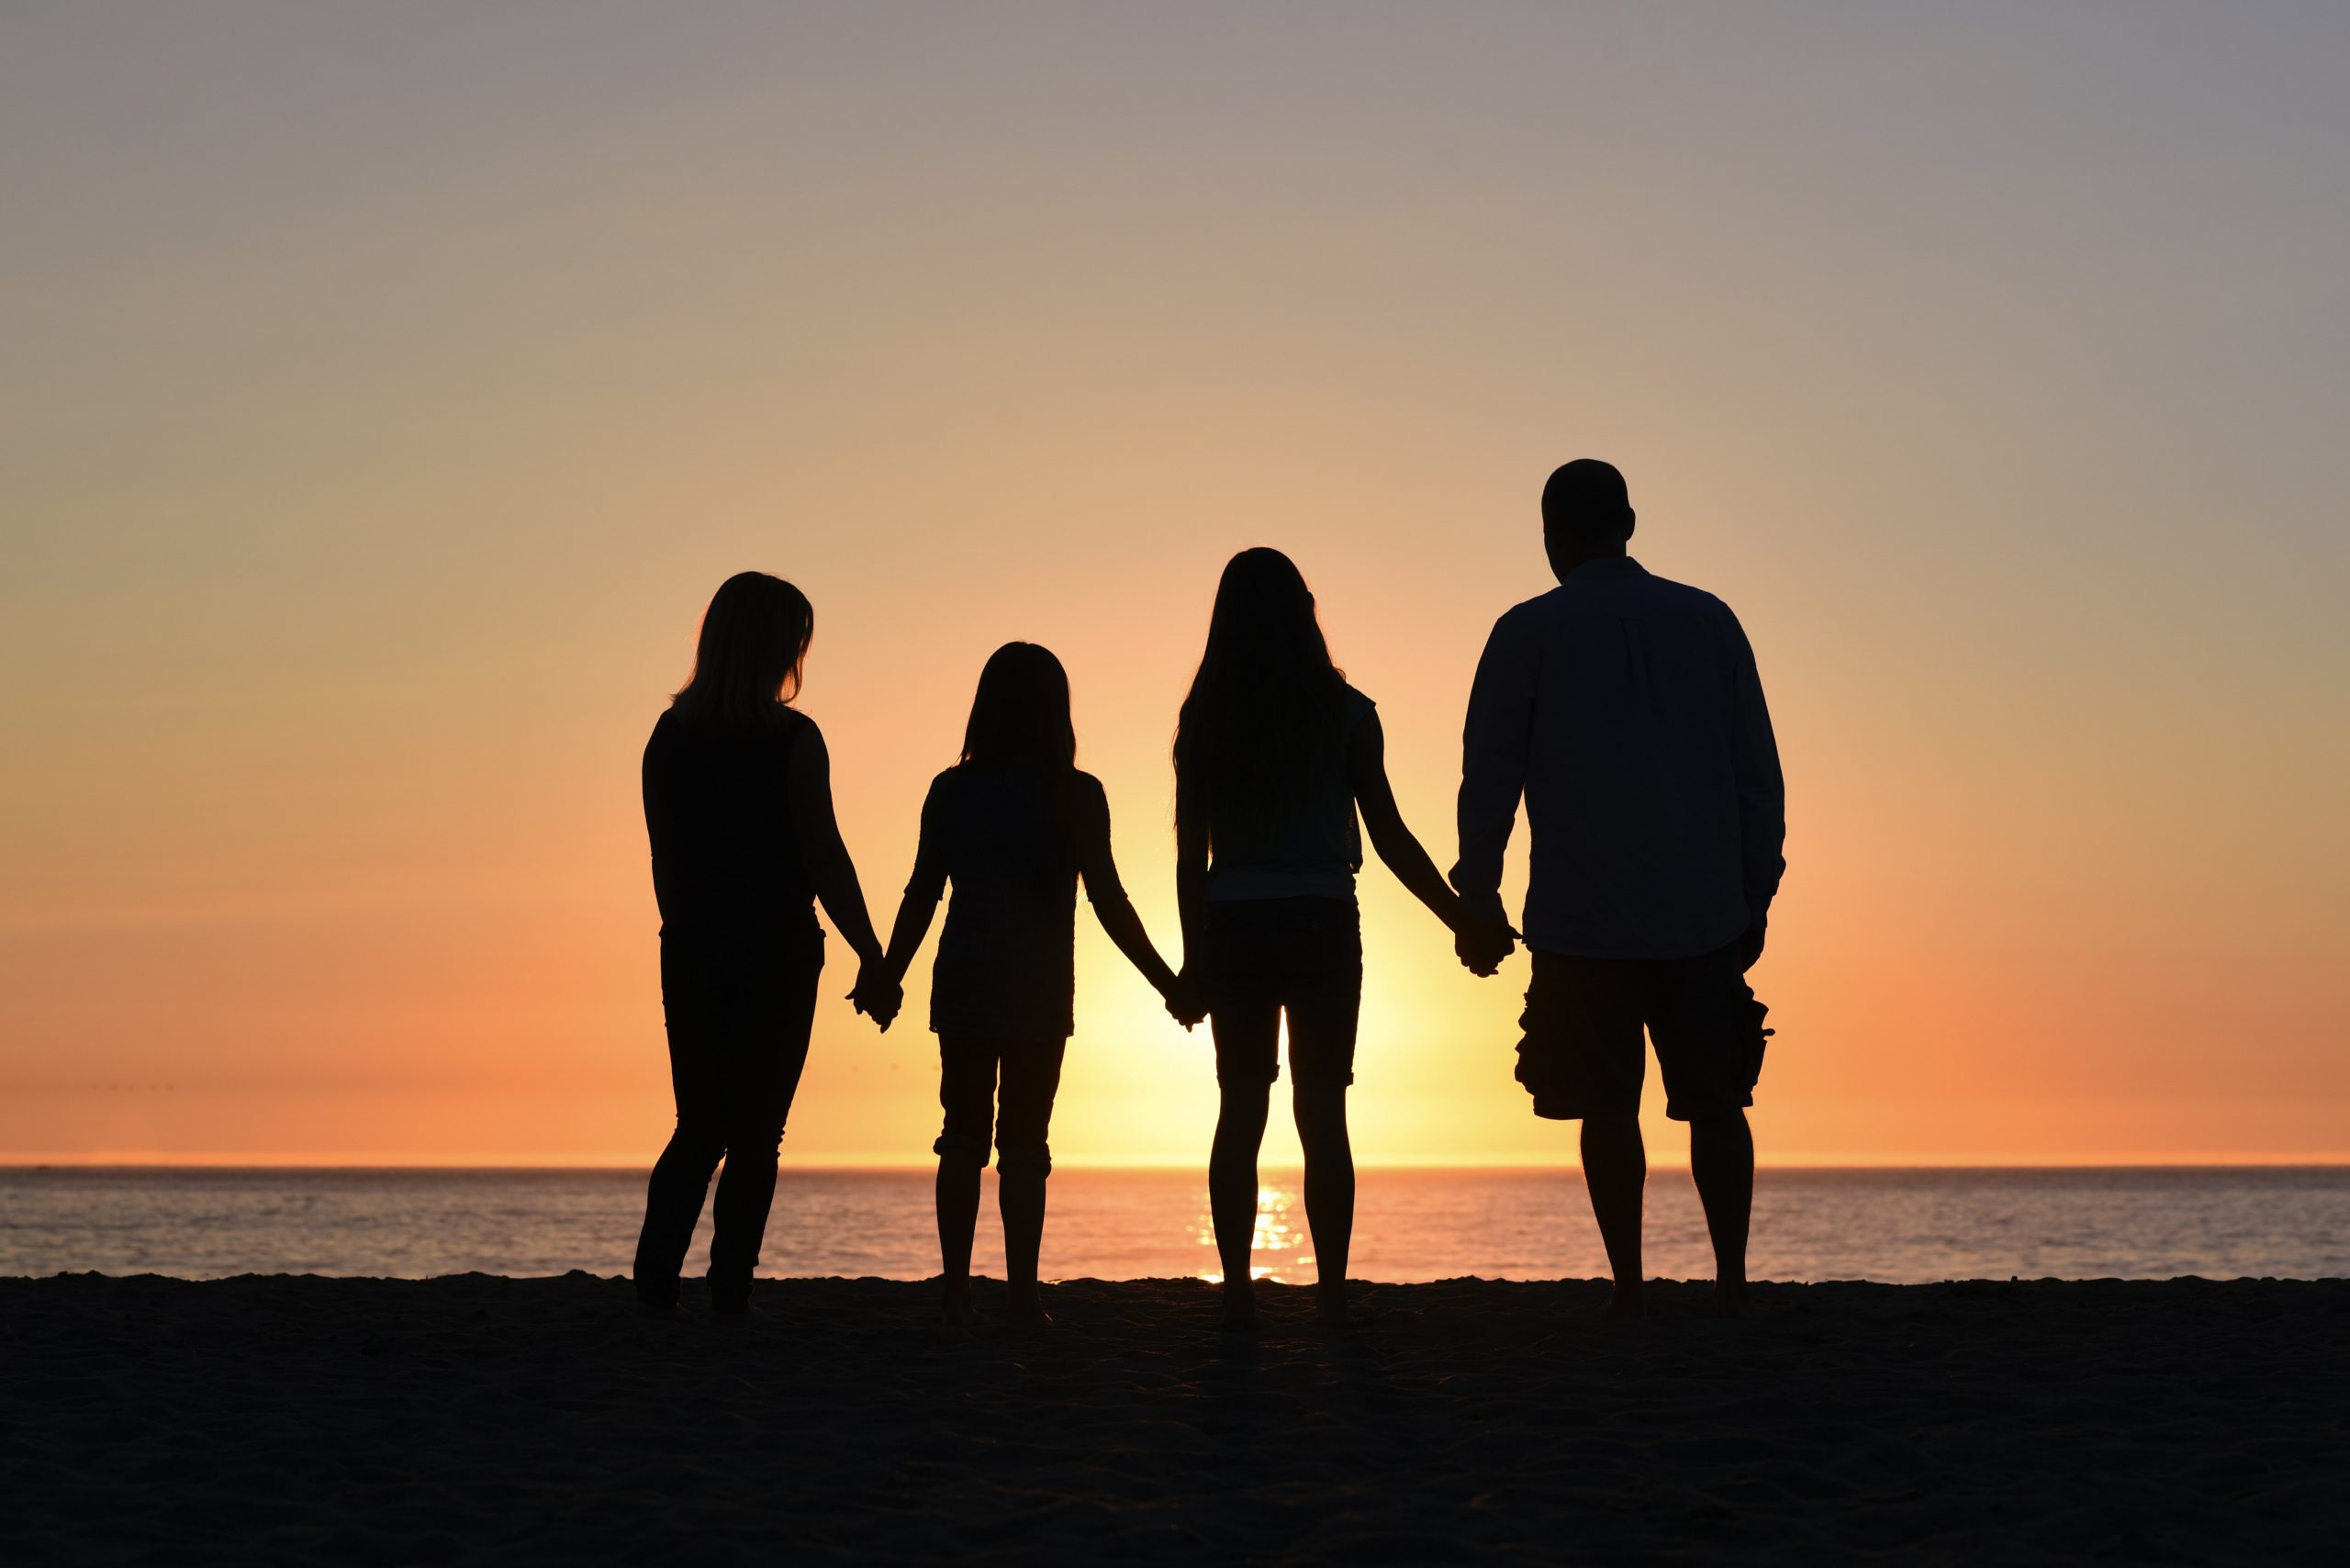 Build a close family for tomorrow; shows 2 adults and 2 kids (a family) holding hands and watching the sunsight. They are shown in silhouette.